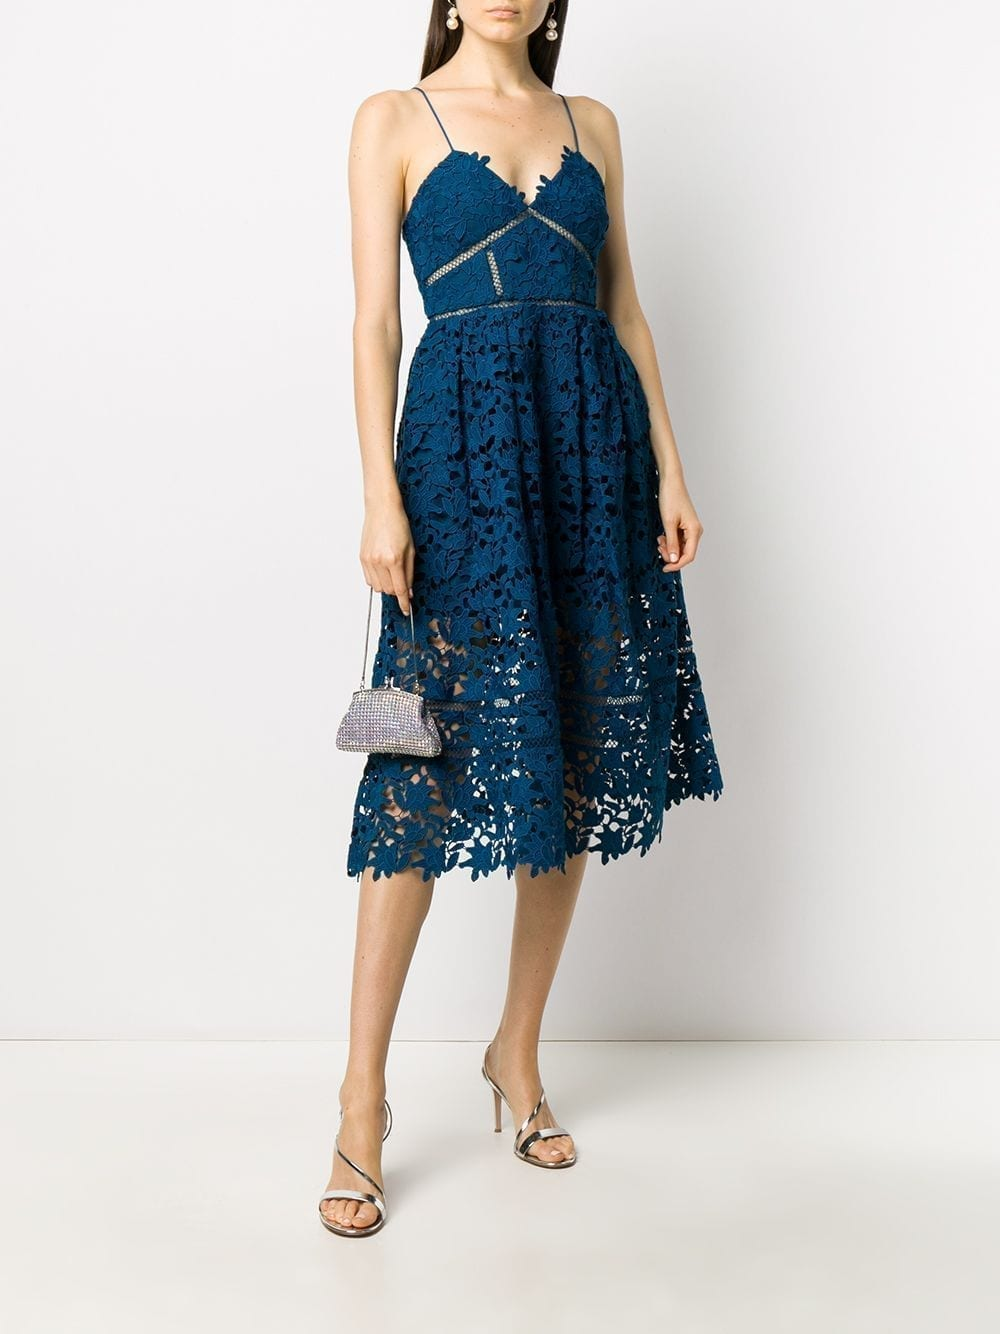 SELF-PORTRAIT Floral Lace Midi Dress